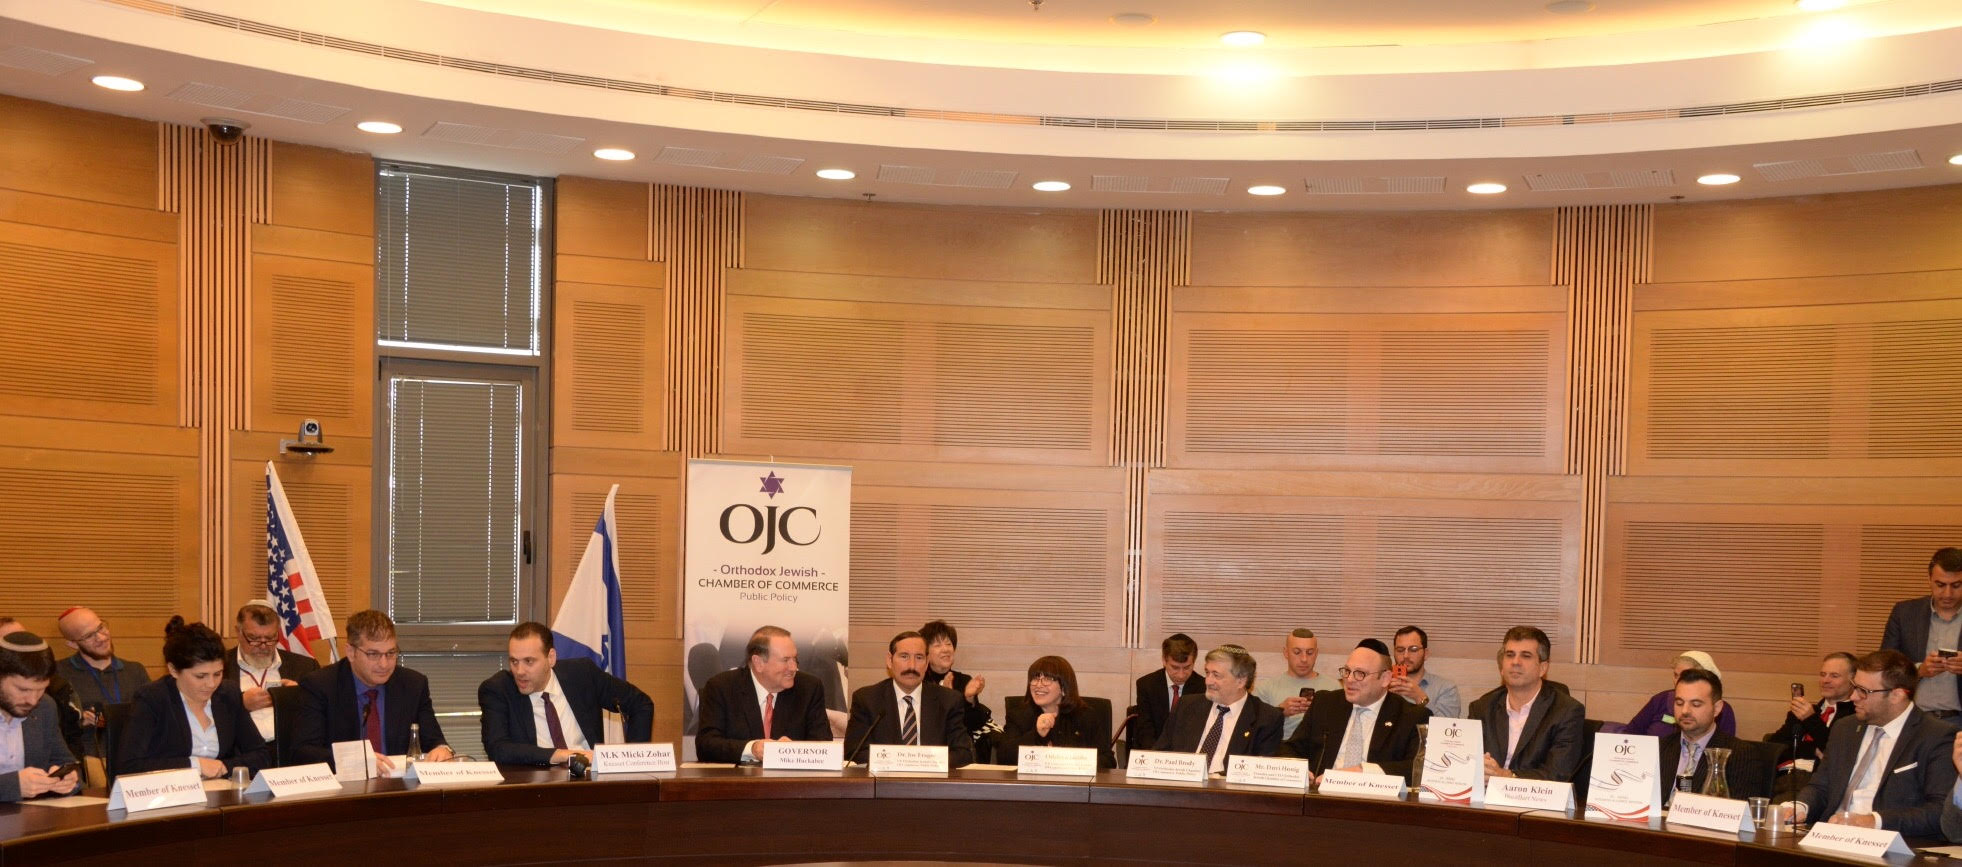 knesset roundtable